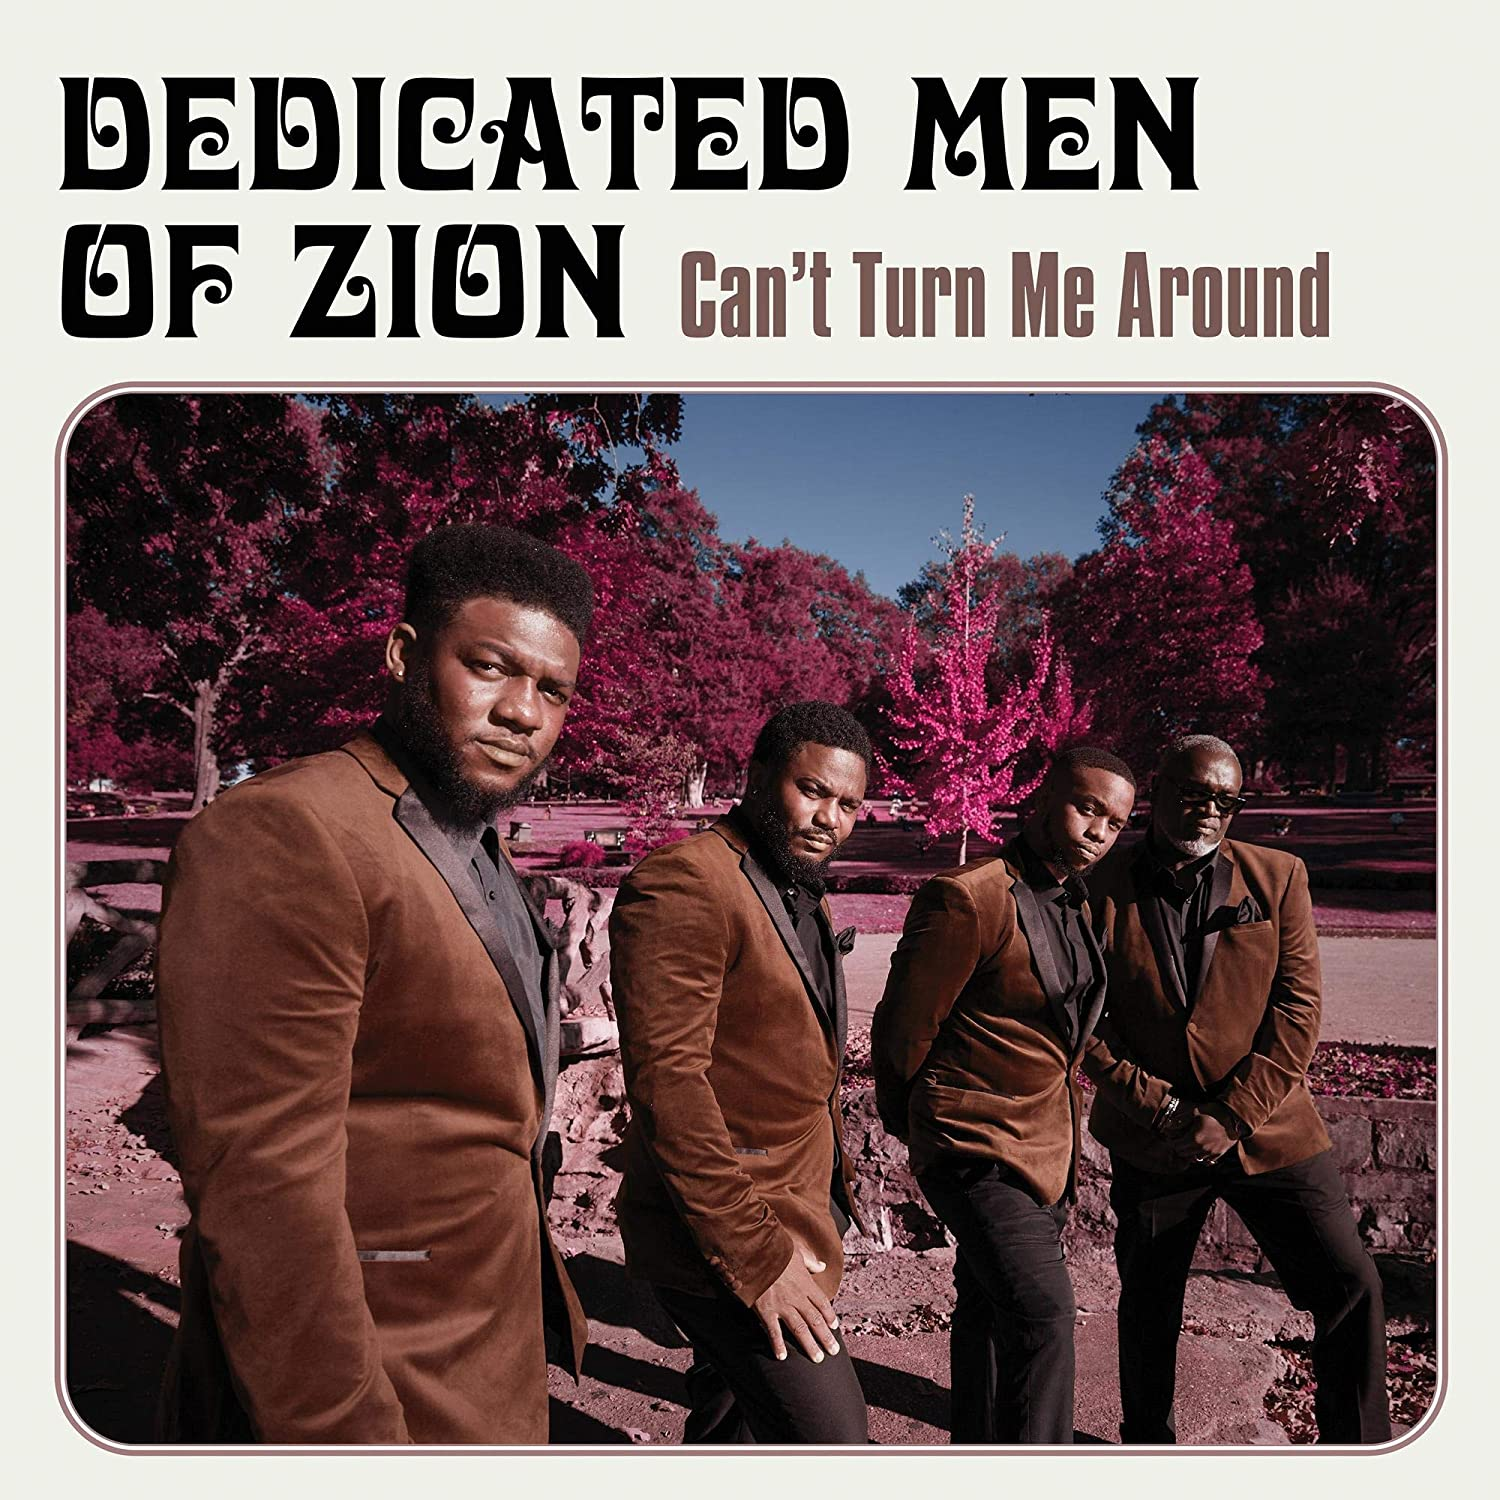 Dedicated Men Of Zion - Can't Turn Me Around [LP] - Urban Vinyl | Records, Headphones, and more.